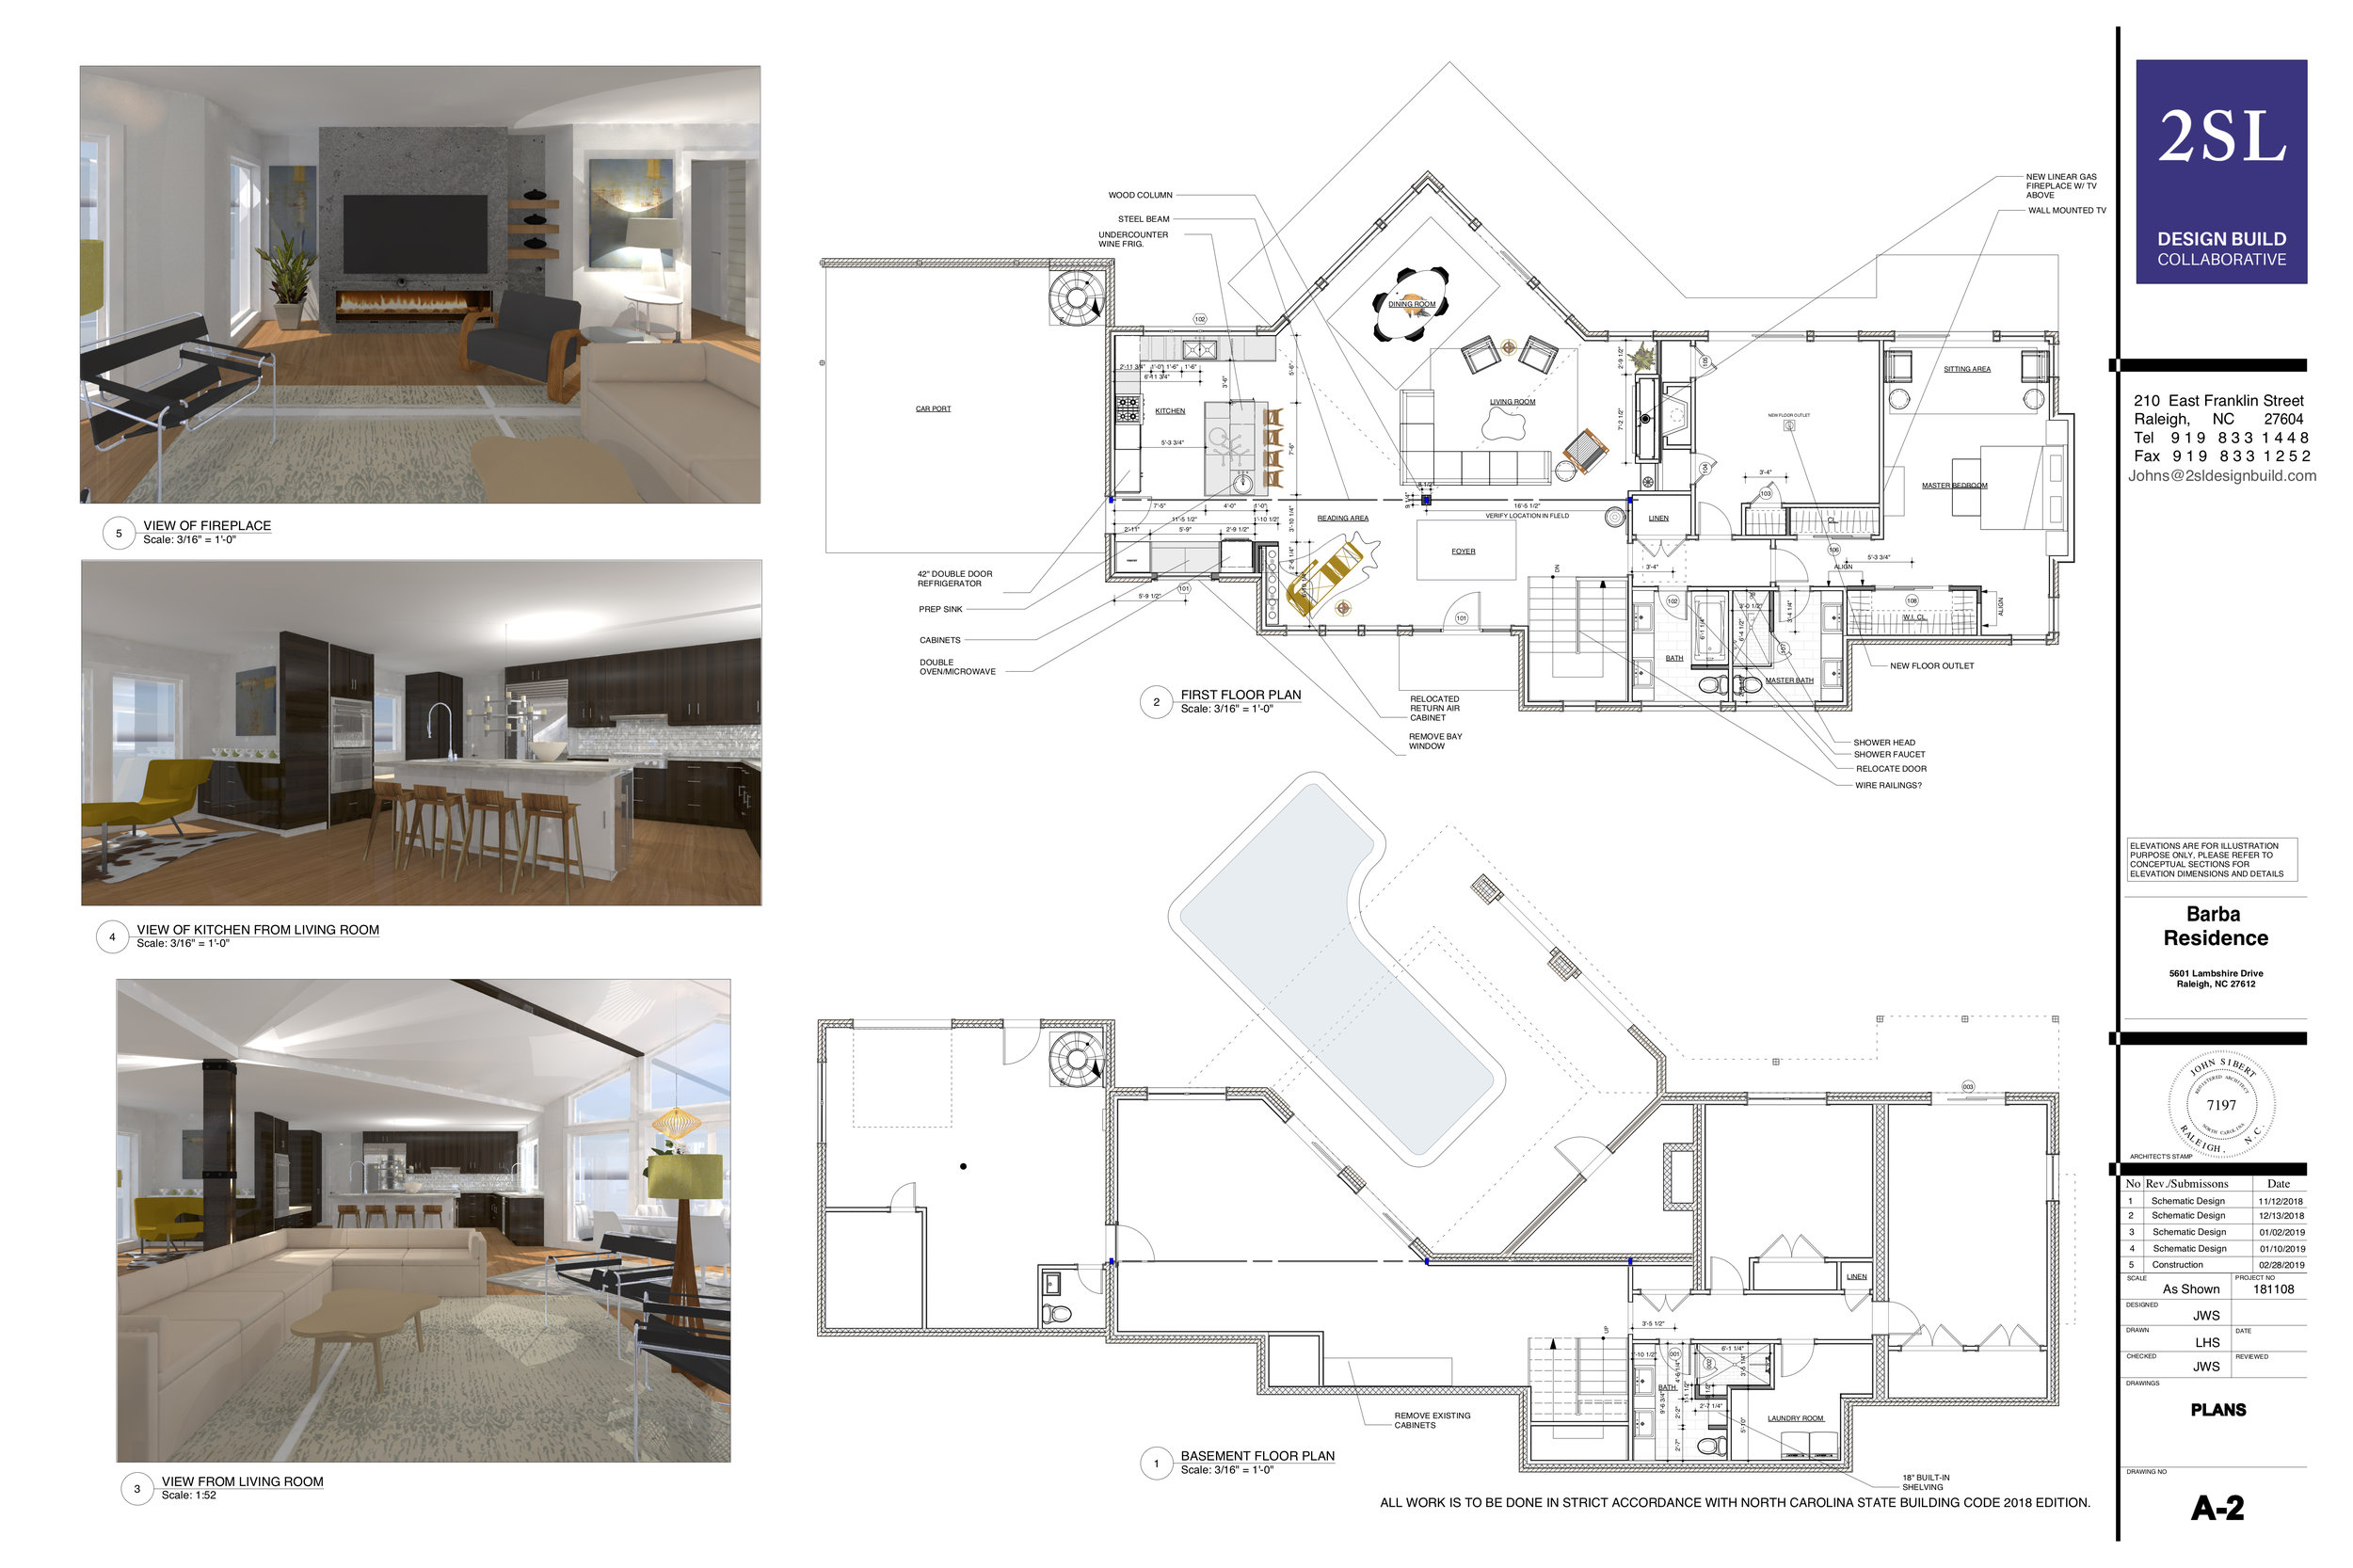 This design plan shows the overall layout.